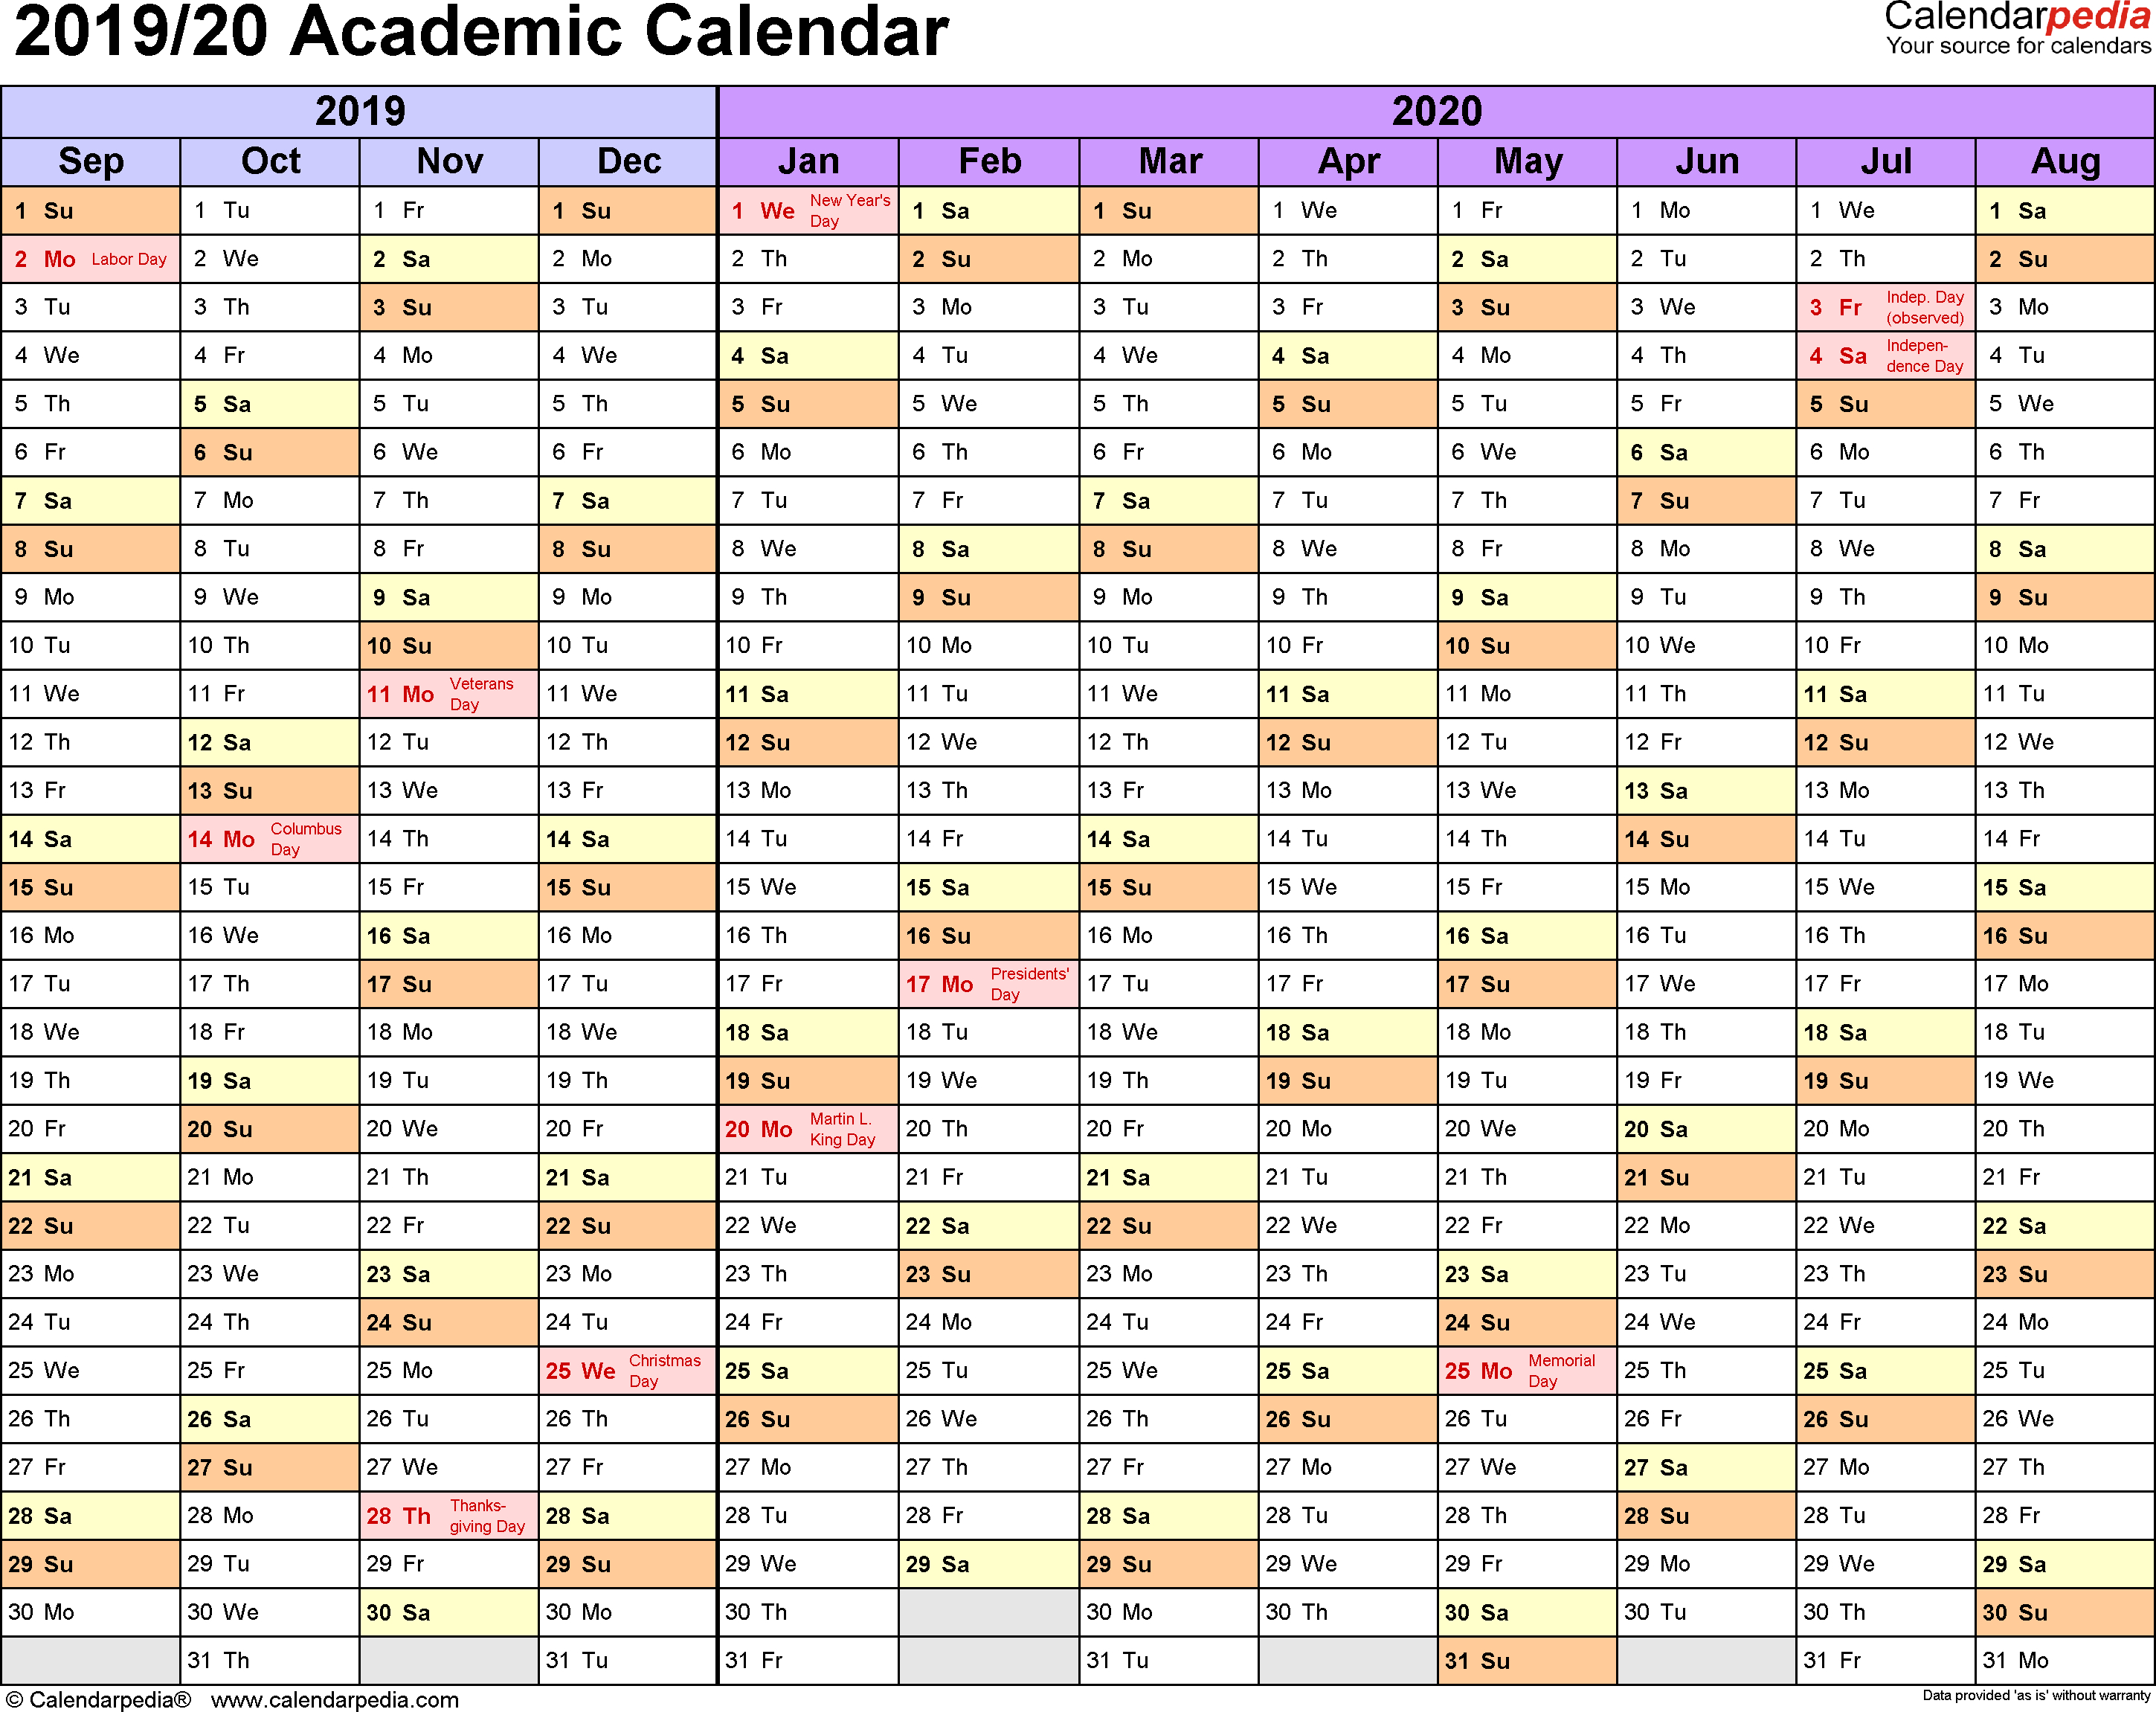 Academic Calendars 2019/2020 - Free Printable Excel Templates with Free School Year At A Glance 2019-2020